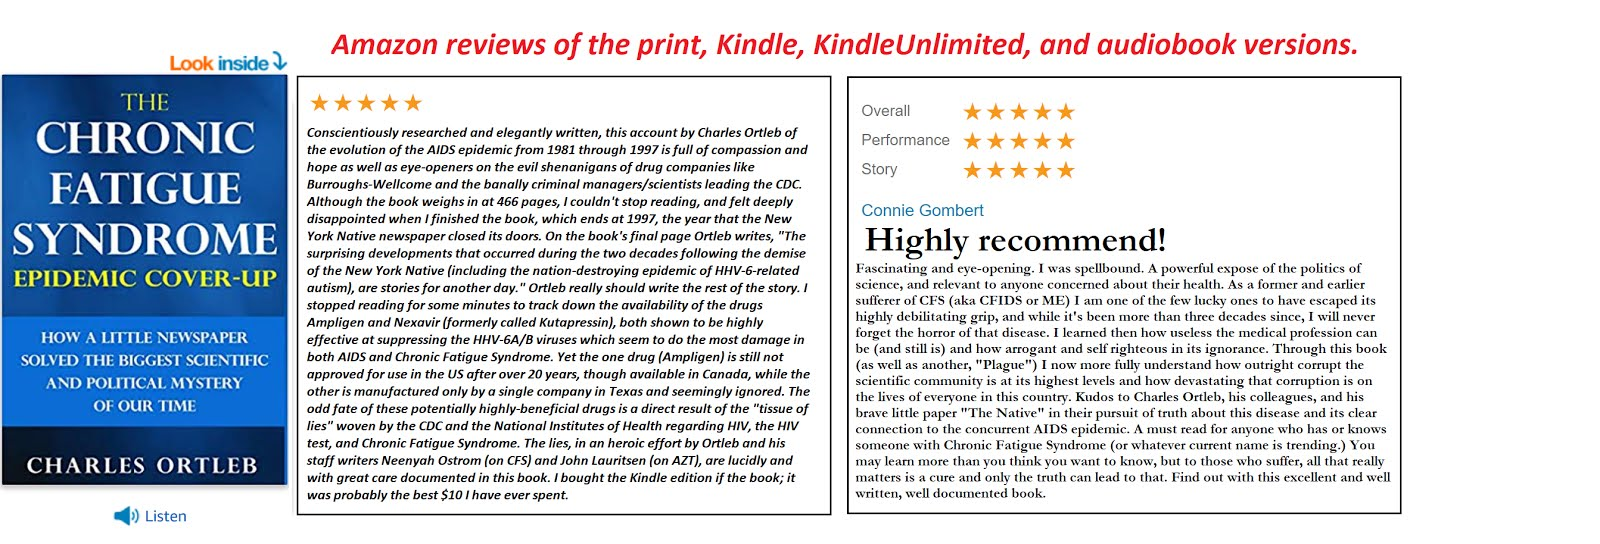 Amazon new review cfs book 1